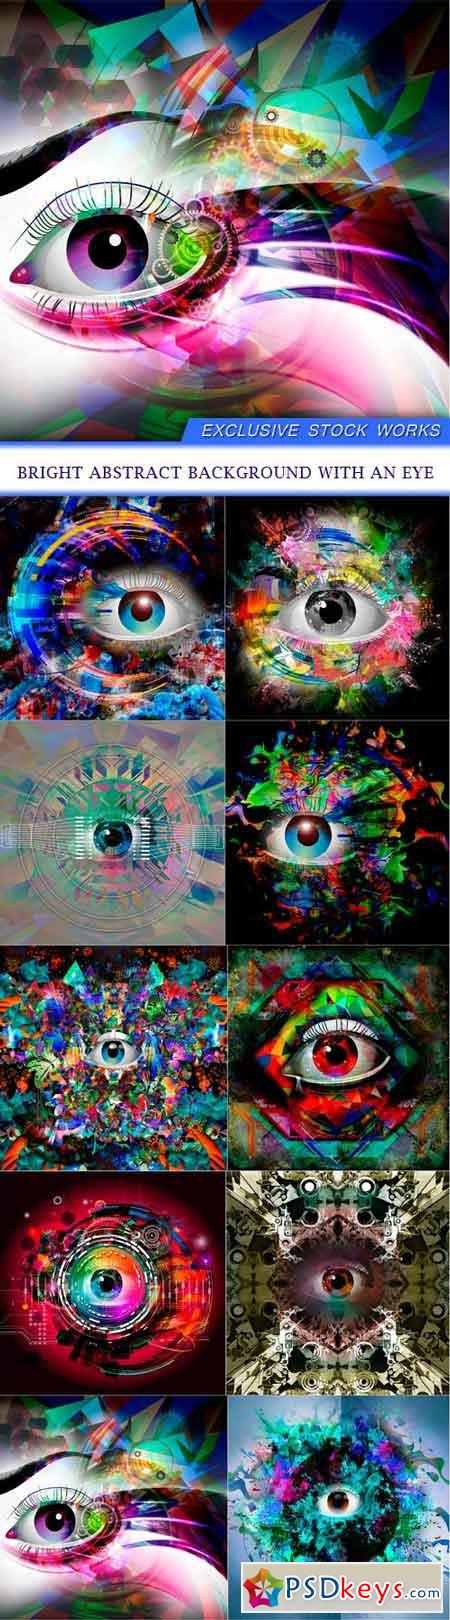 Bright abstract background with an eye 10X JPEG